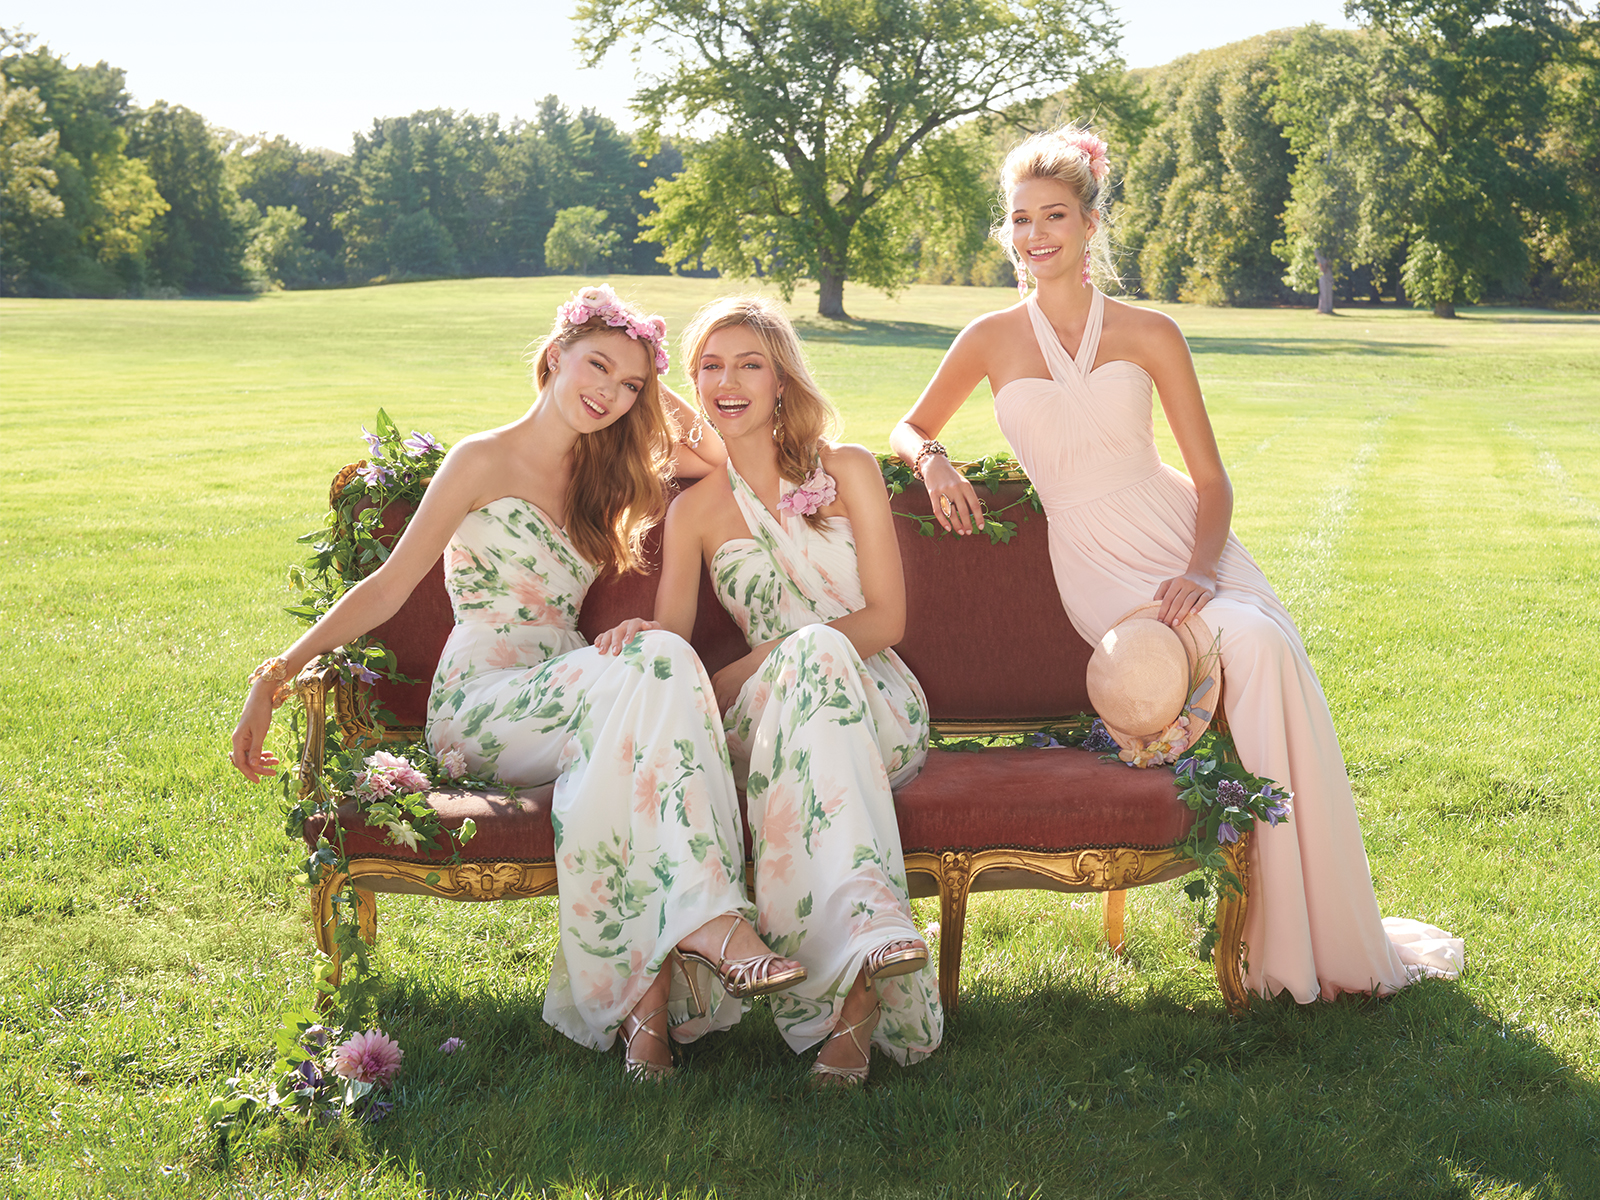 The Camille La Vie Bridesmaid Dress Collection